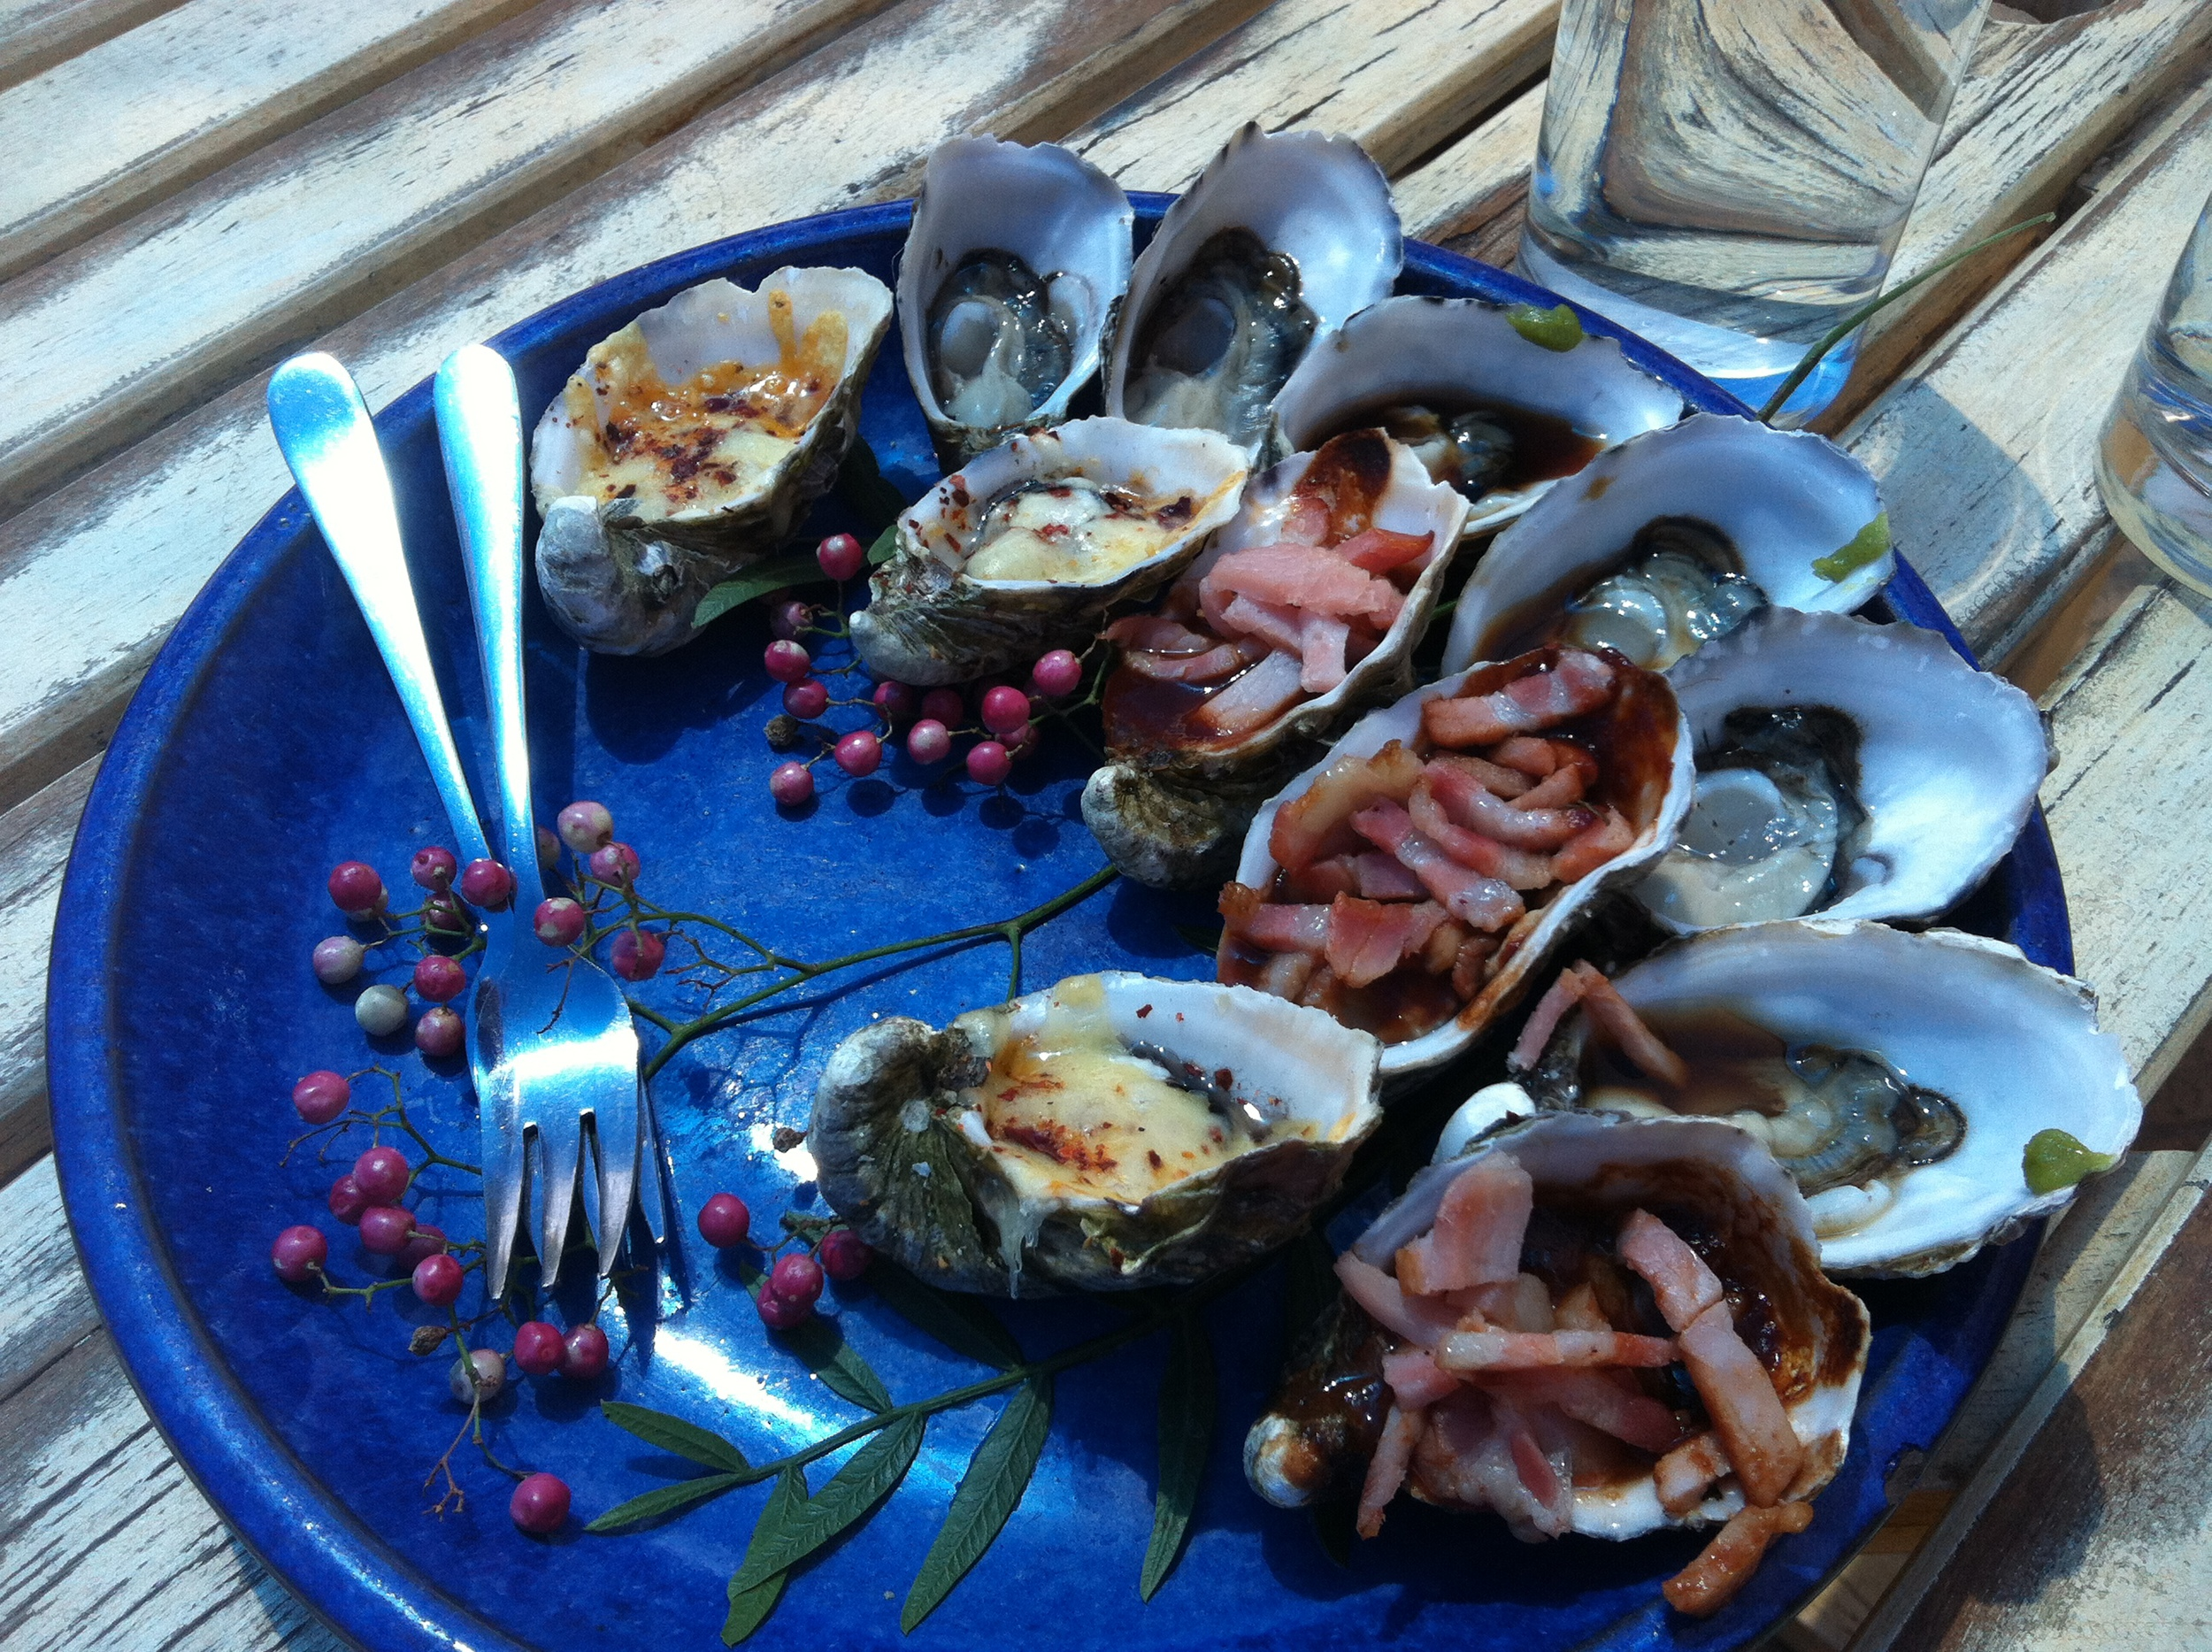 Coffin Bay Oyster lunch! Kilpatrick, Mornay, Wasabi, and Natural. My fav...Wasabi